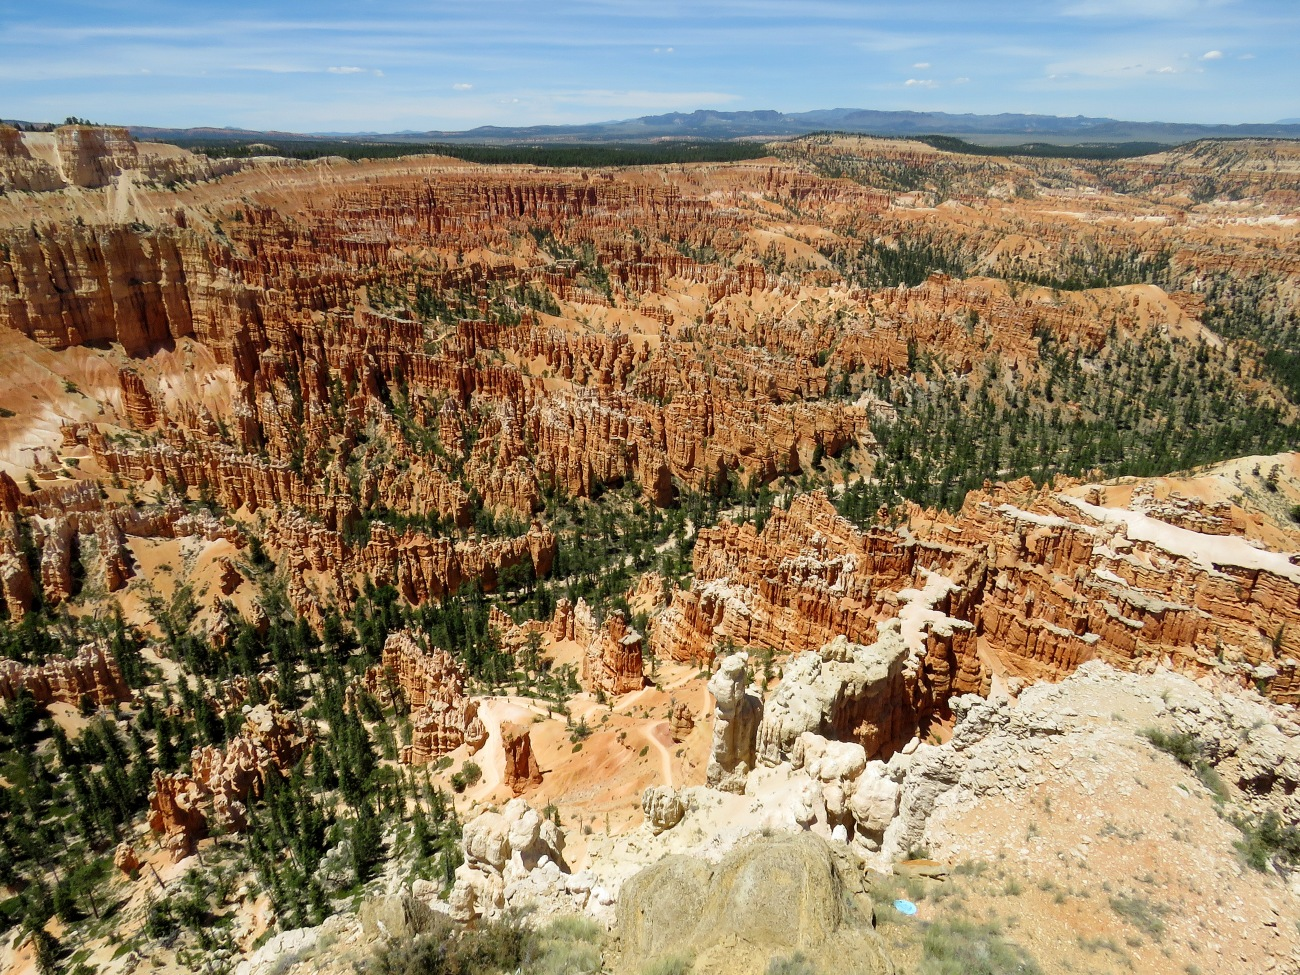 20170617_163224_View from Bryce Point